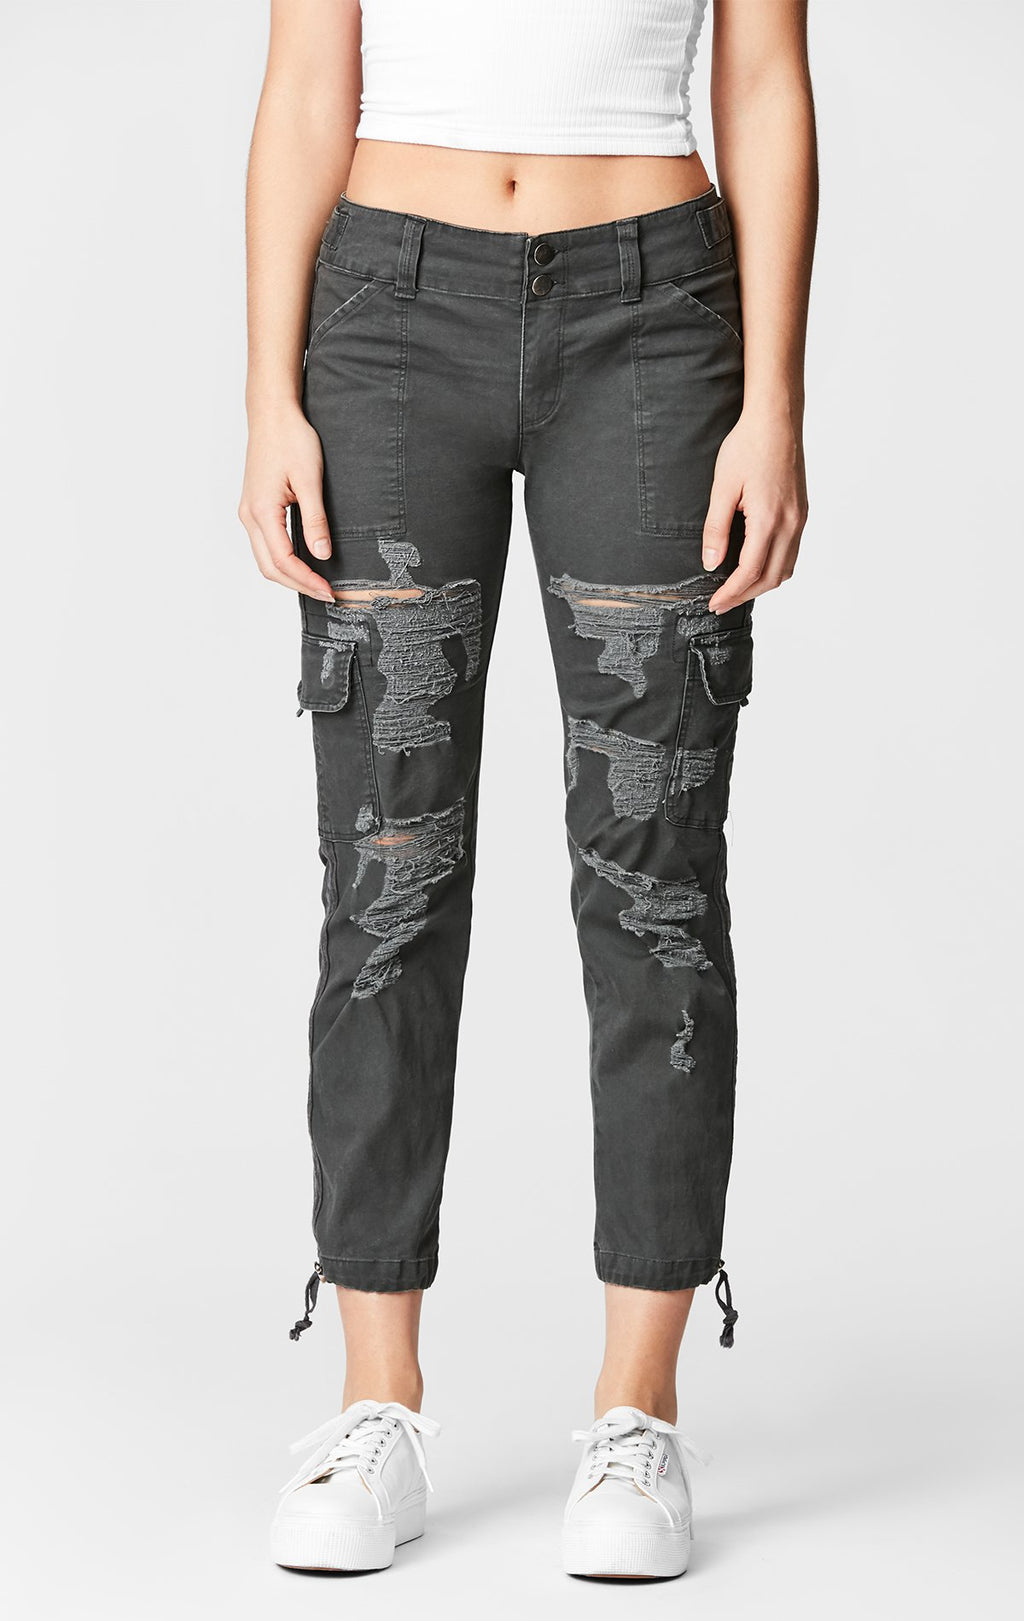 CARMAR DENIM SLIM FIT SHREDDED CARGO PANT CROP FRONT